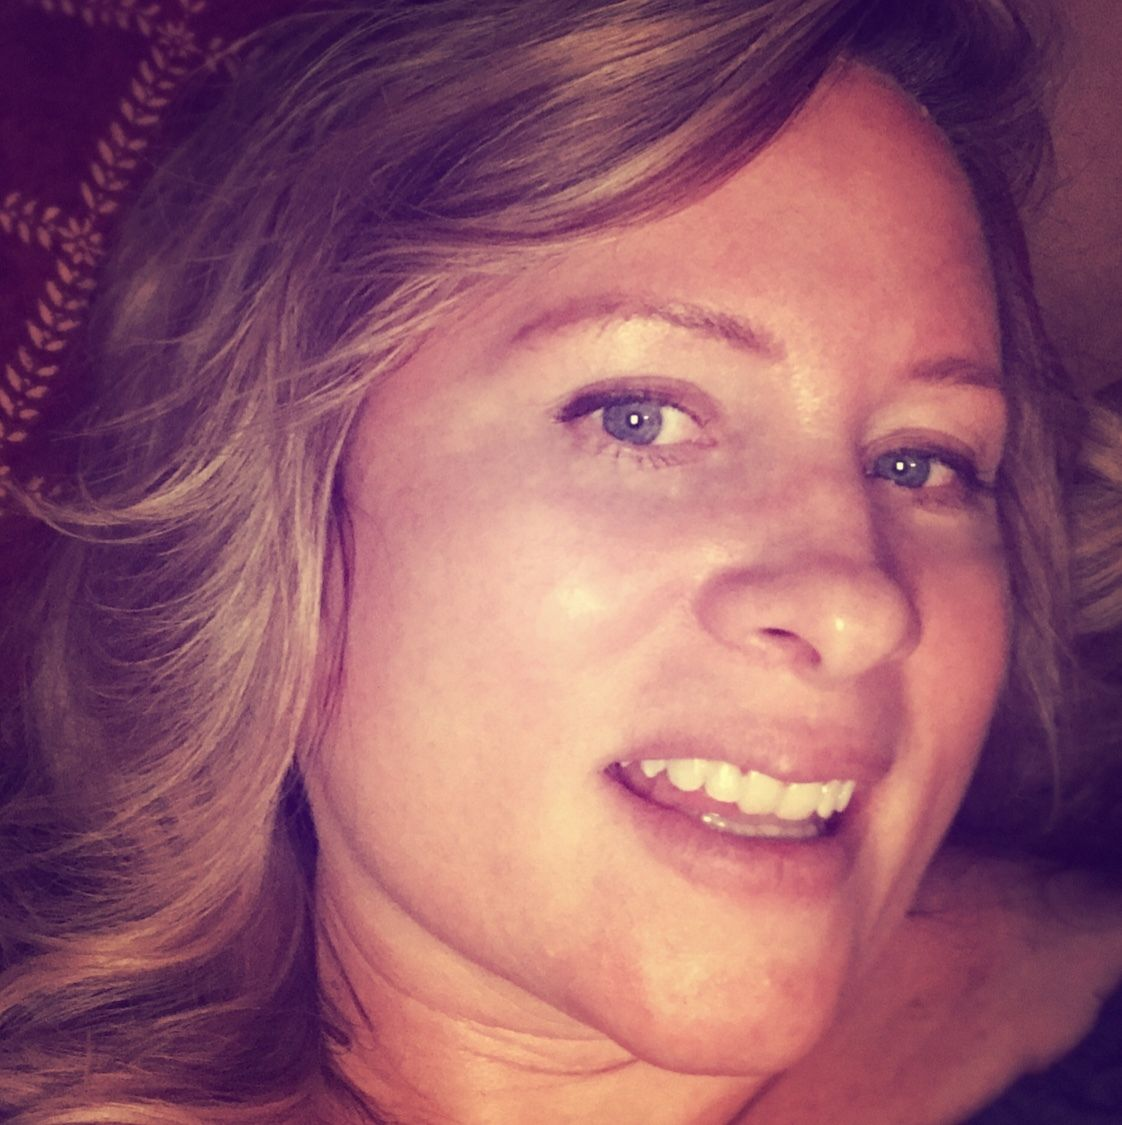 lenore singles & personals Local classifieds, buy and sell locally, cars, furniture, pets, real estate, merchandise and more personals: singles: lenore sveinbjornson.